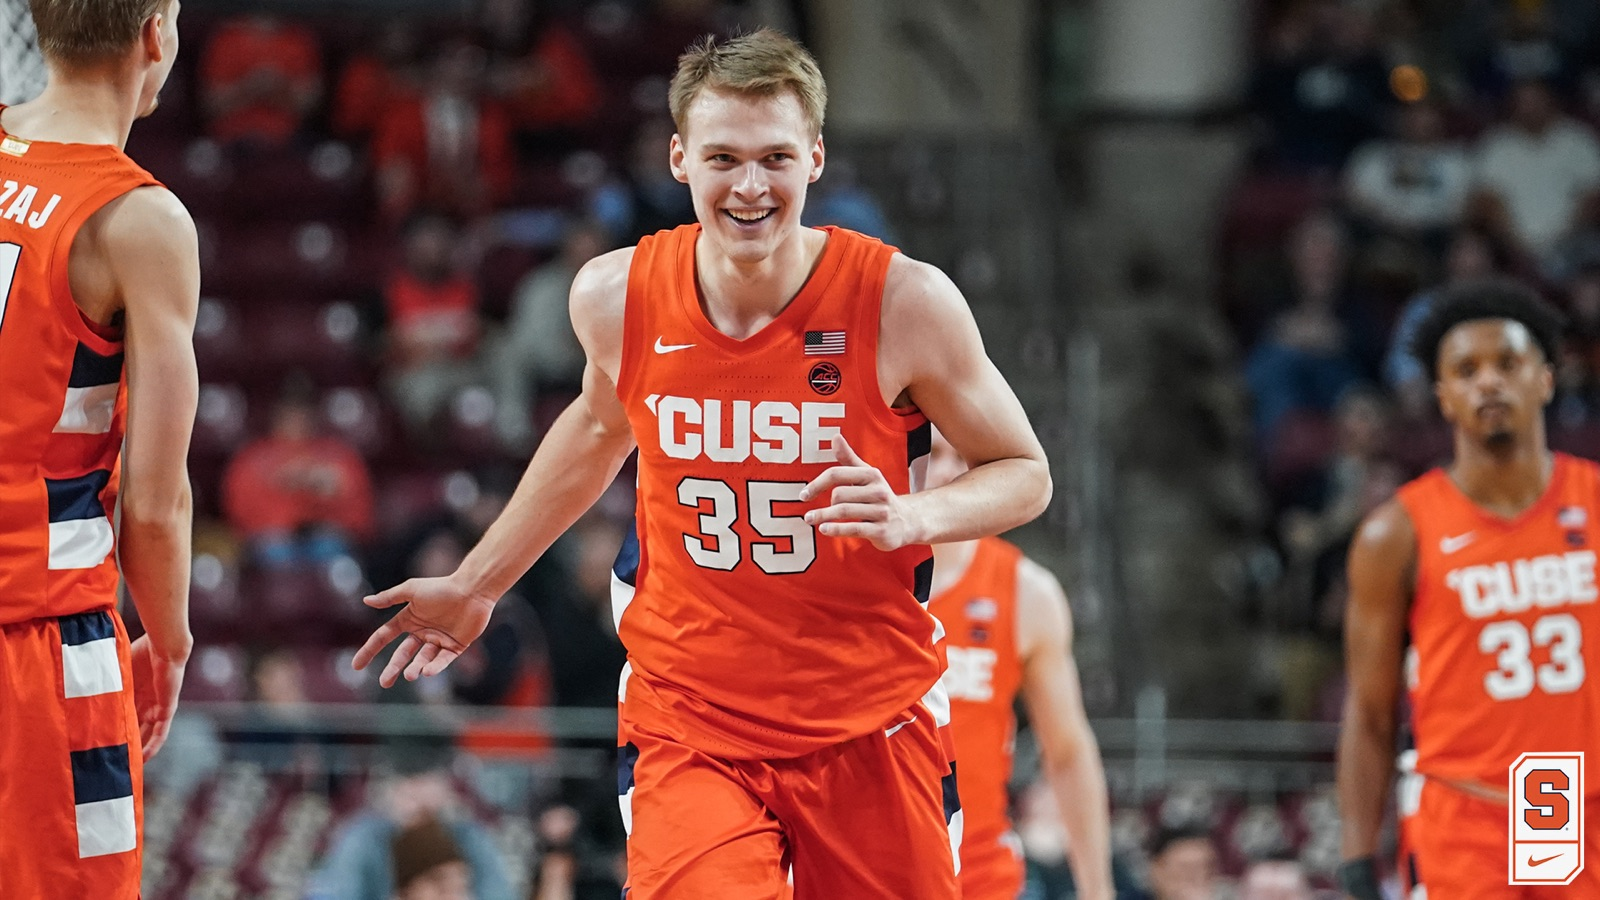 ORANGE GAME DAY: Syracuse hits the road to take on Boston College tonight (preview & info)